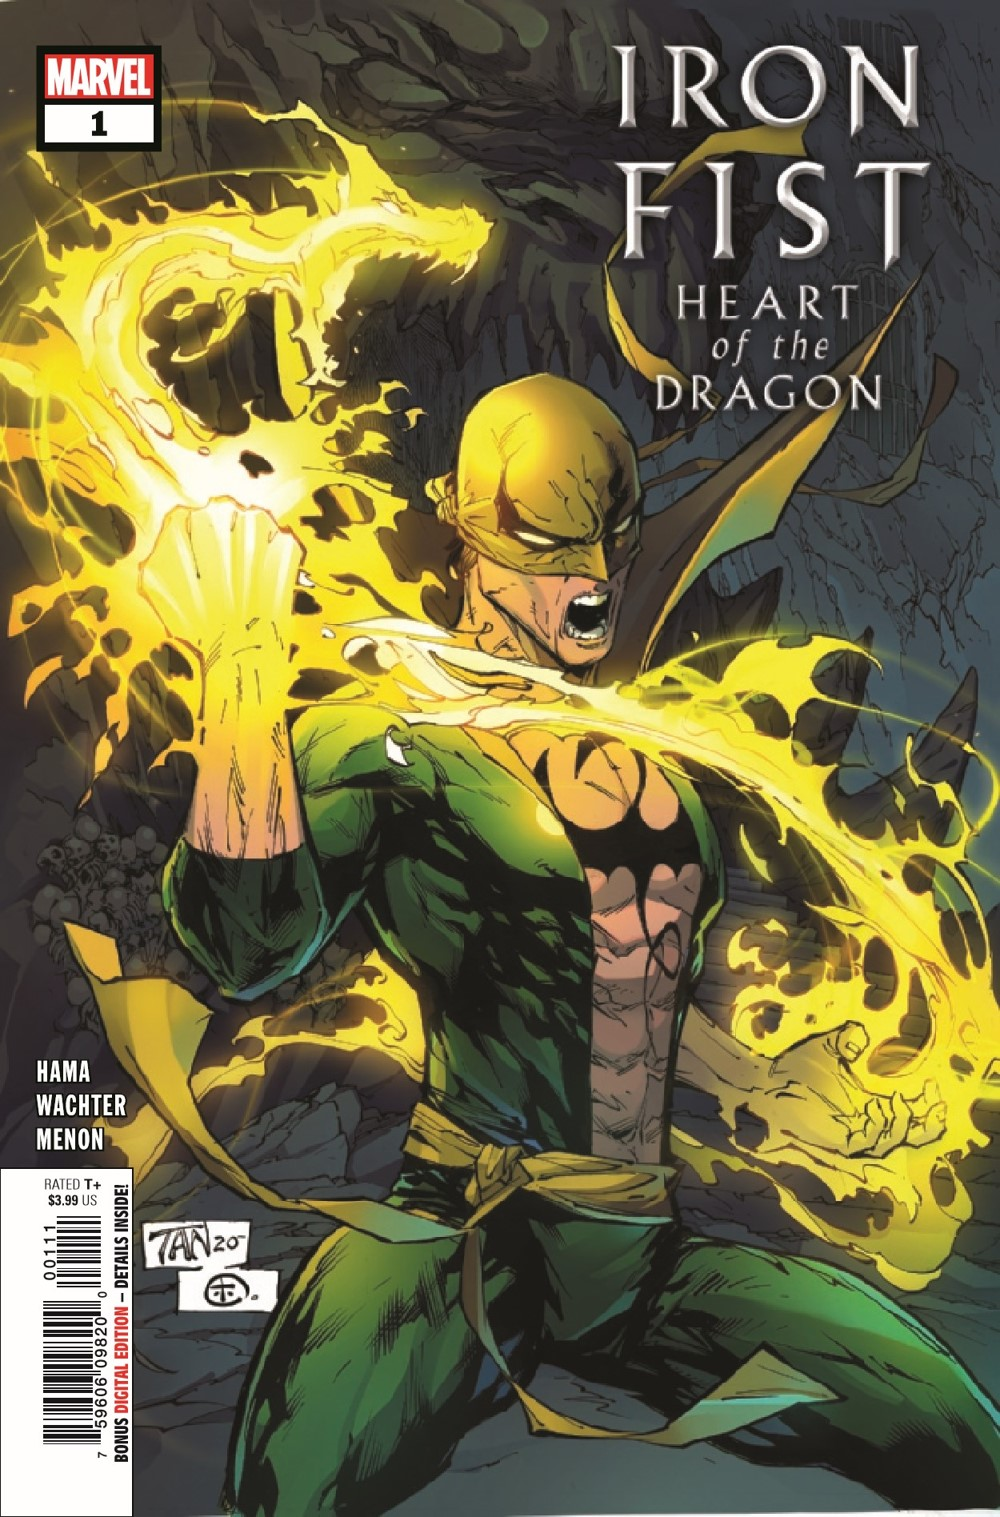 IRONFISTHOD2021001_Preview-1 ComicList Previews: IRON FIST HEART OF THE DRAGON #1 (OF 6)